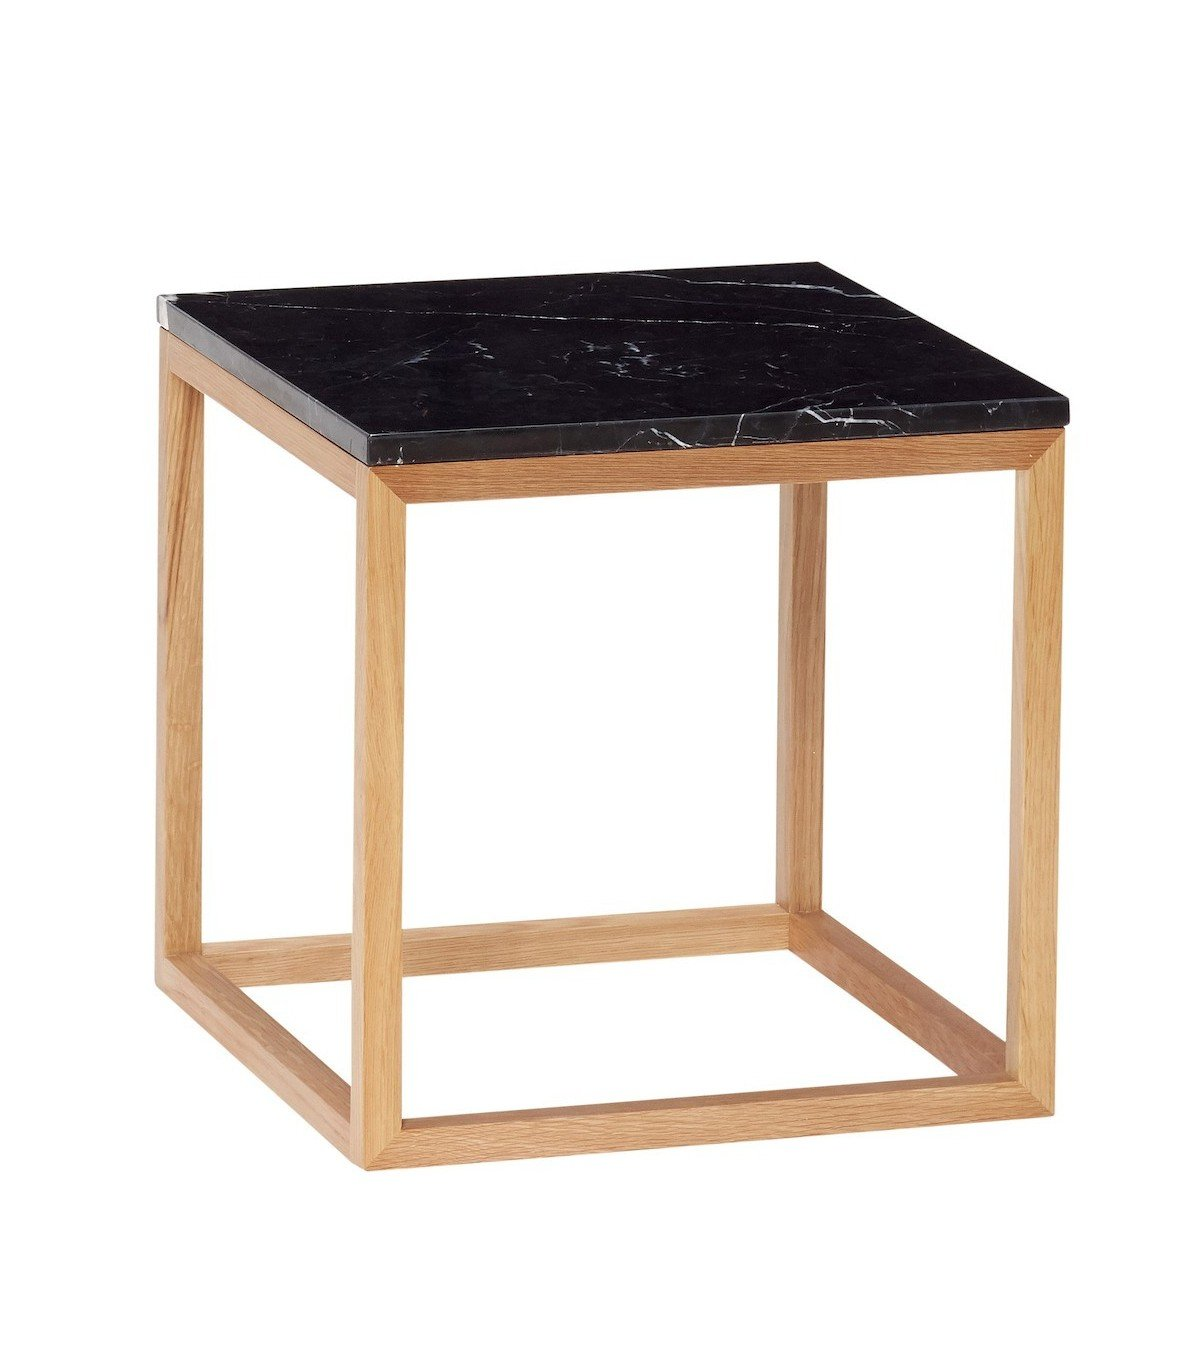 Table basse cube noire hubsch - Tables basses noires ...